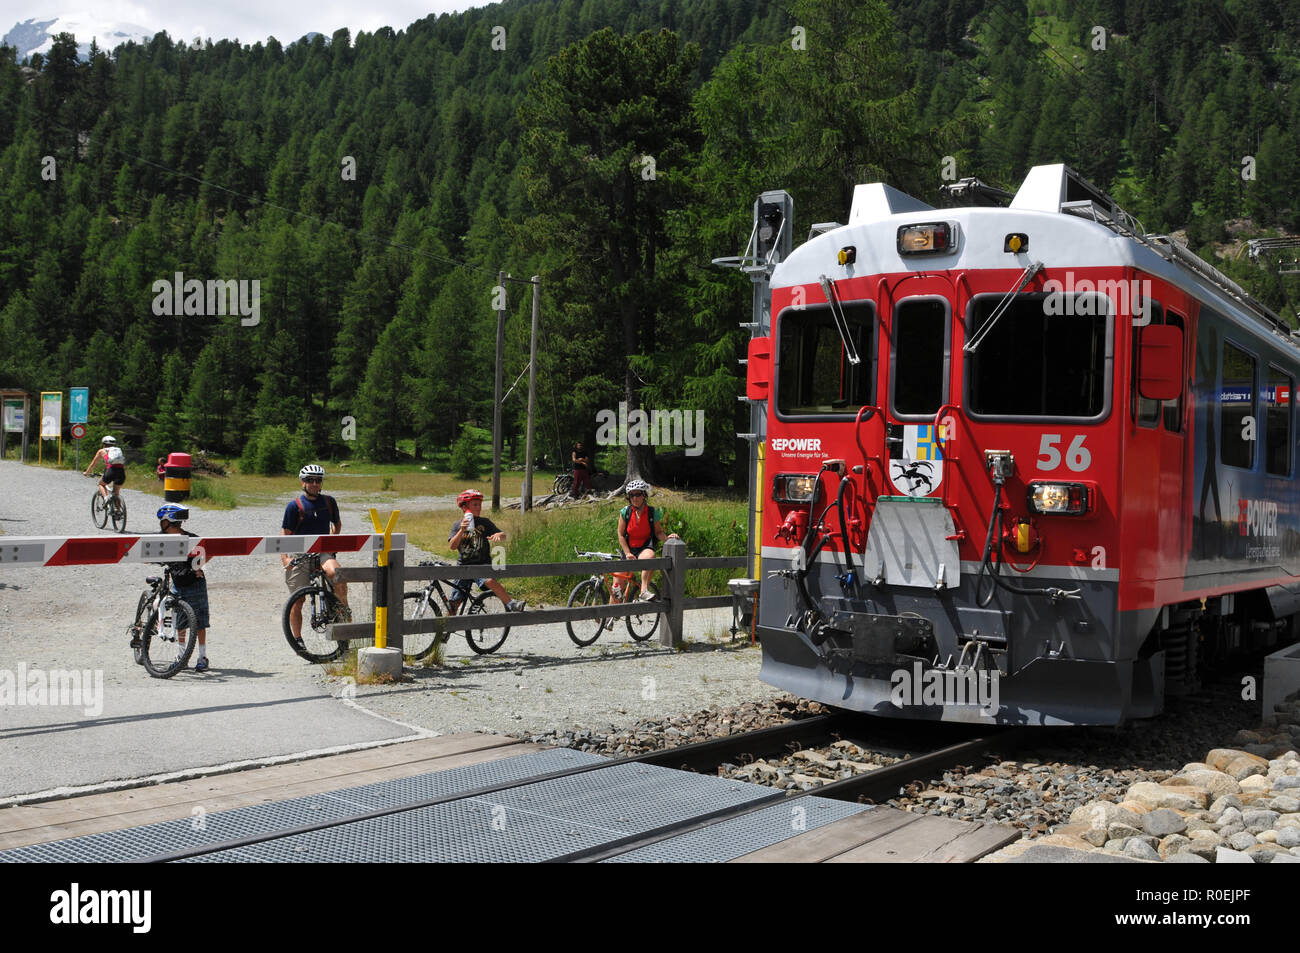 Swiss Alps: Bikers and hikers at the train station Morteratsch in Upper-Engadin in canton Graubünden - Stock Image